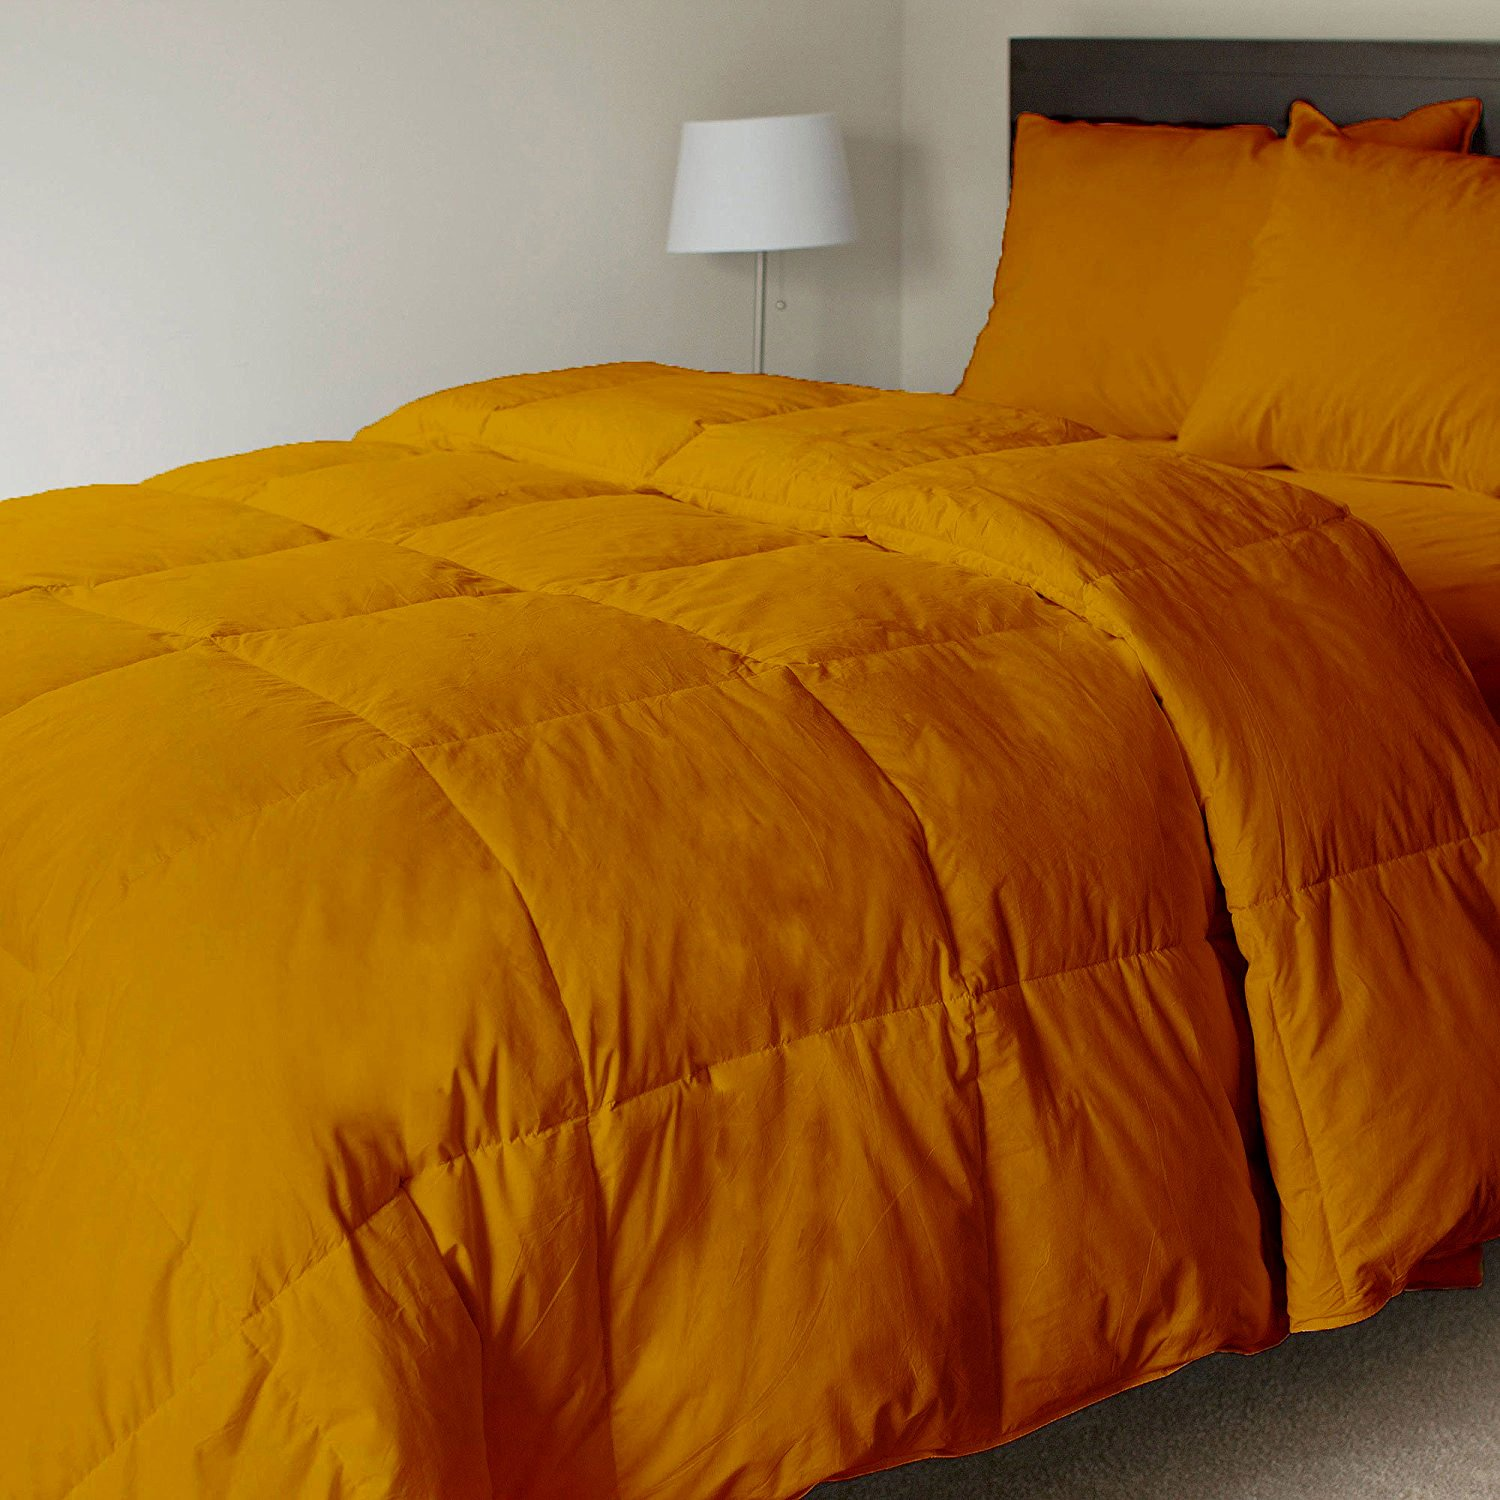 Luxurious and Elegant Quality Soft Fluffy 500 GSM Comforter 600TC 100% long staple Egyptian cotton All Seasons Italian finish Breathable Design Quilt/Comforter by Bedding Homes(Queen-Gold)